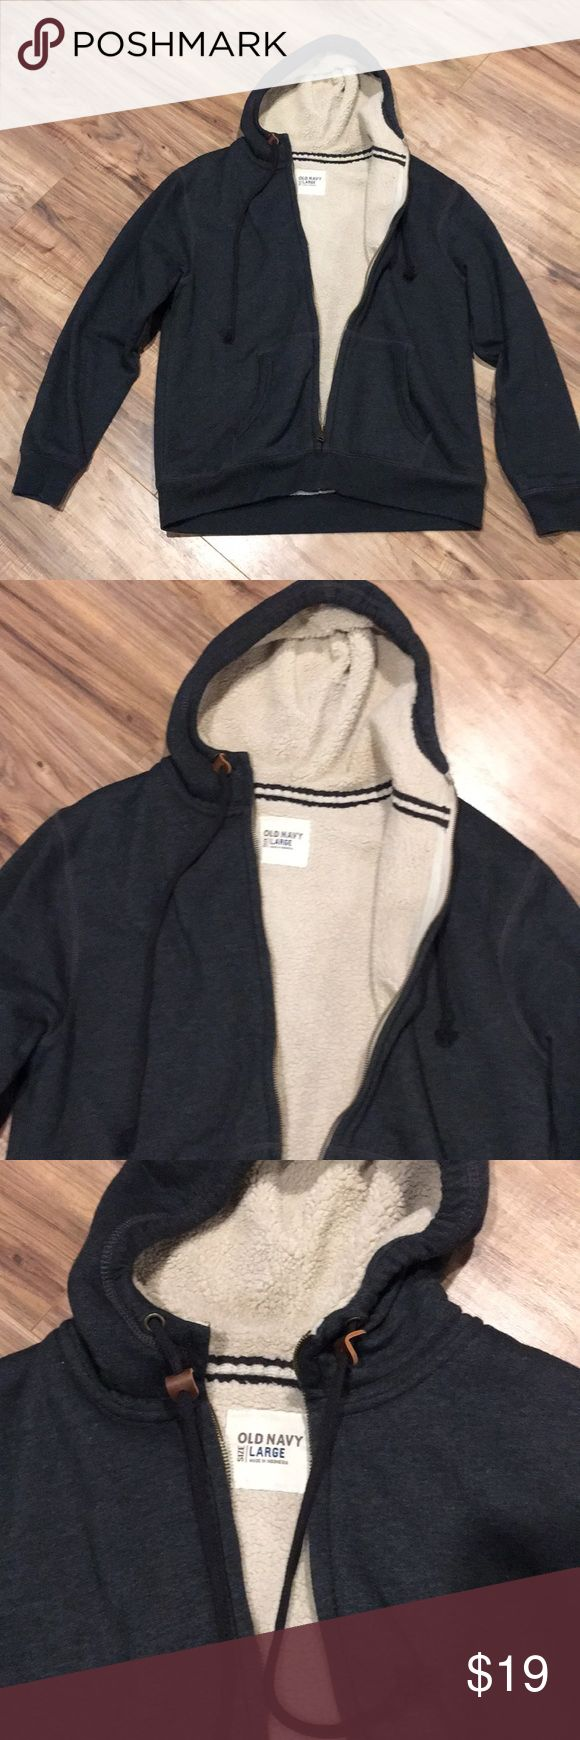 Men's Large Old Navy faux fur Hoodie Jacket L Men's Large Old Navy faux fur Hoodie Jacket L I accept reasonable offers and ship quickly. Thank you for looking. Old Navy Jackets & Coats